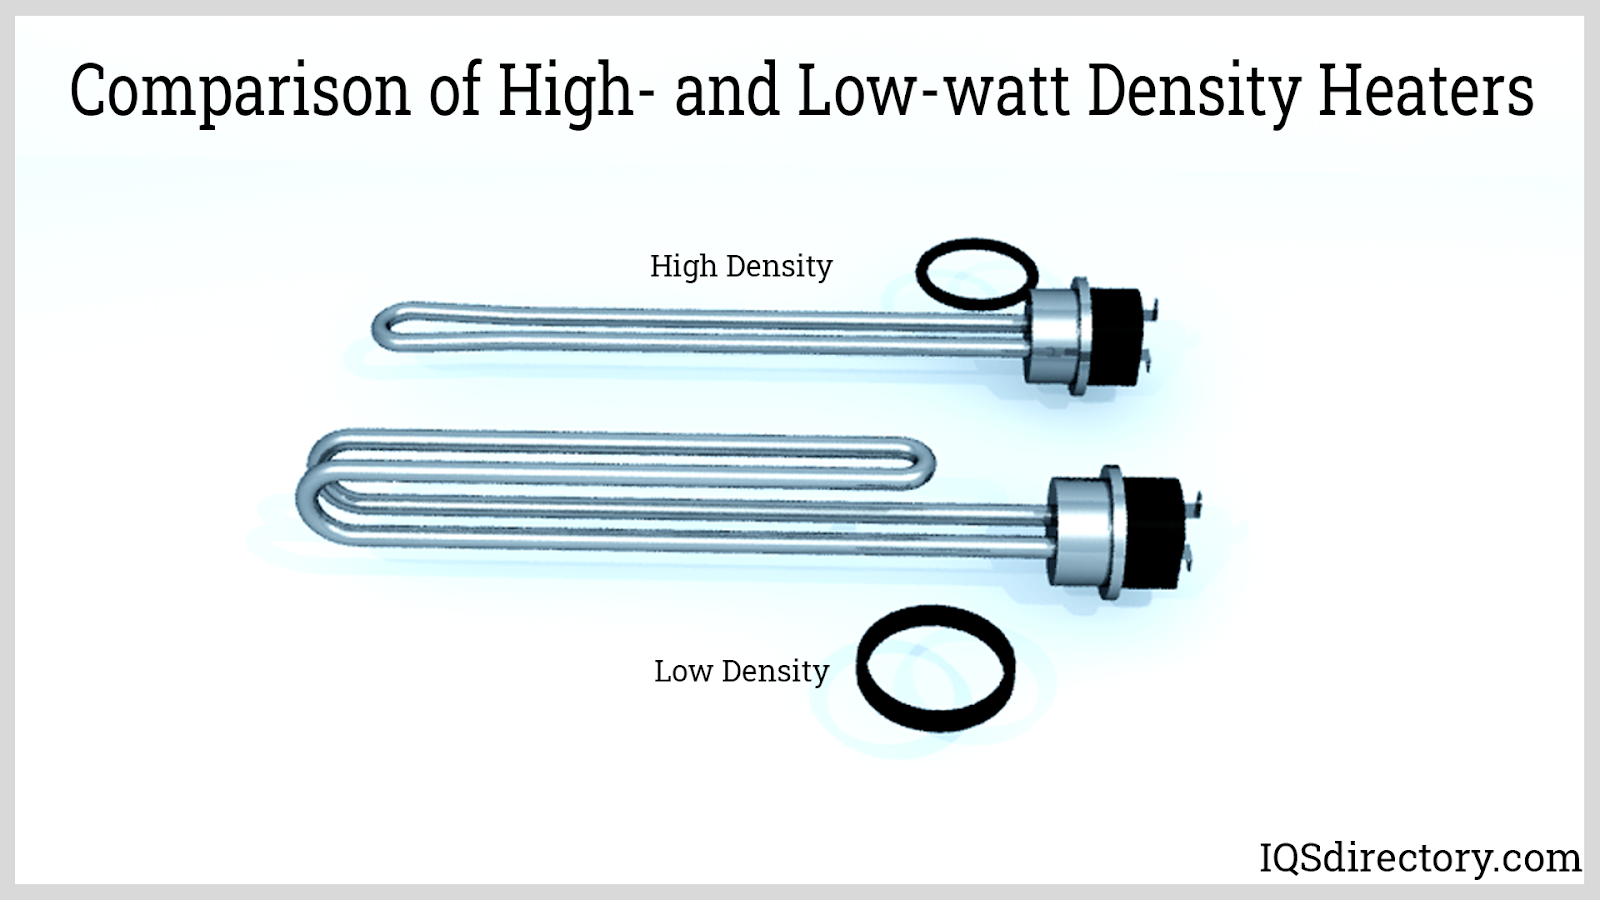 Comparison of High- and Low-watt Density Heaters